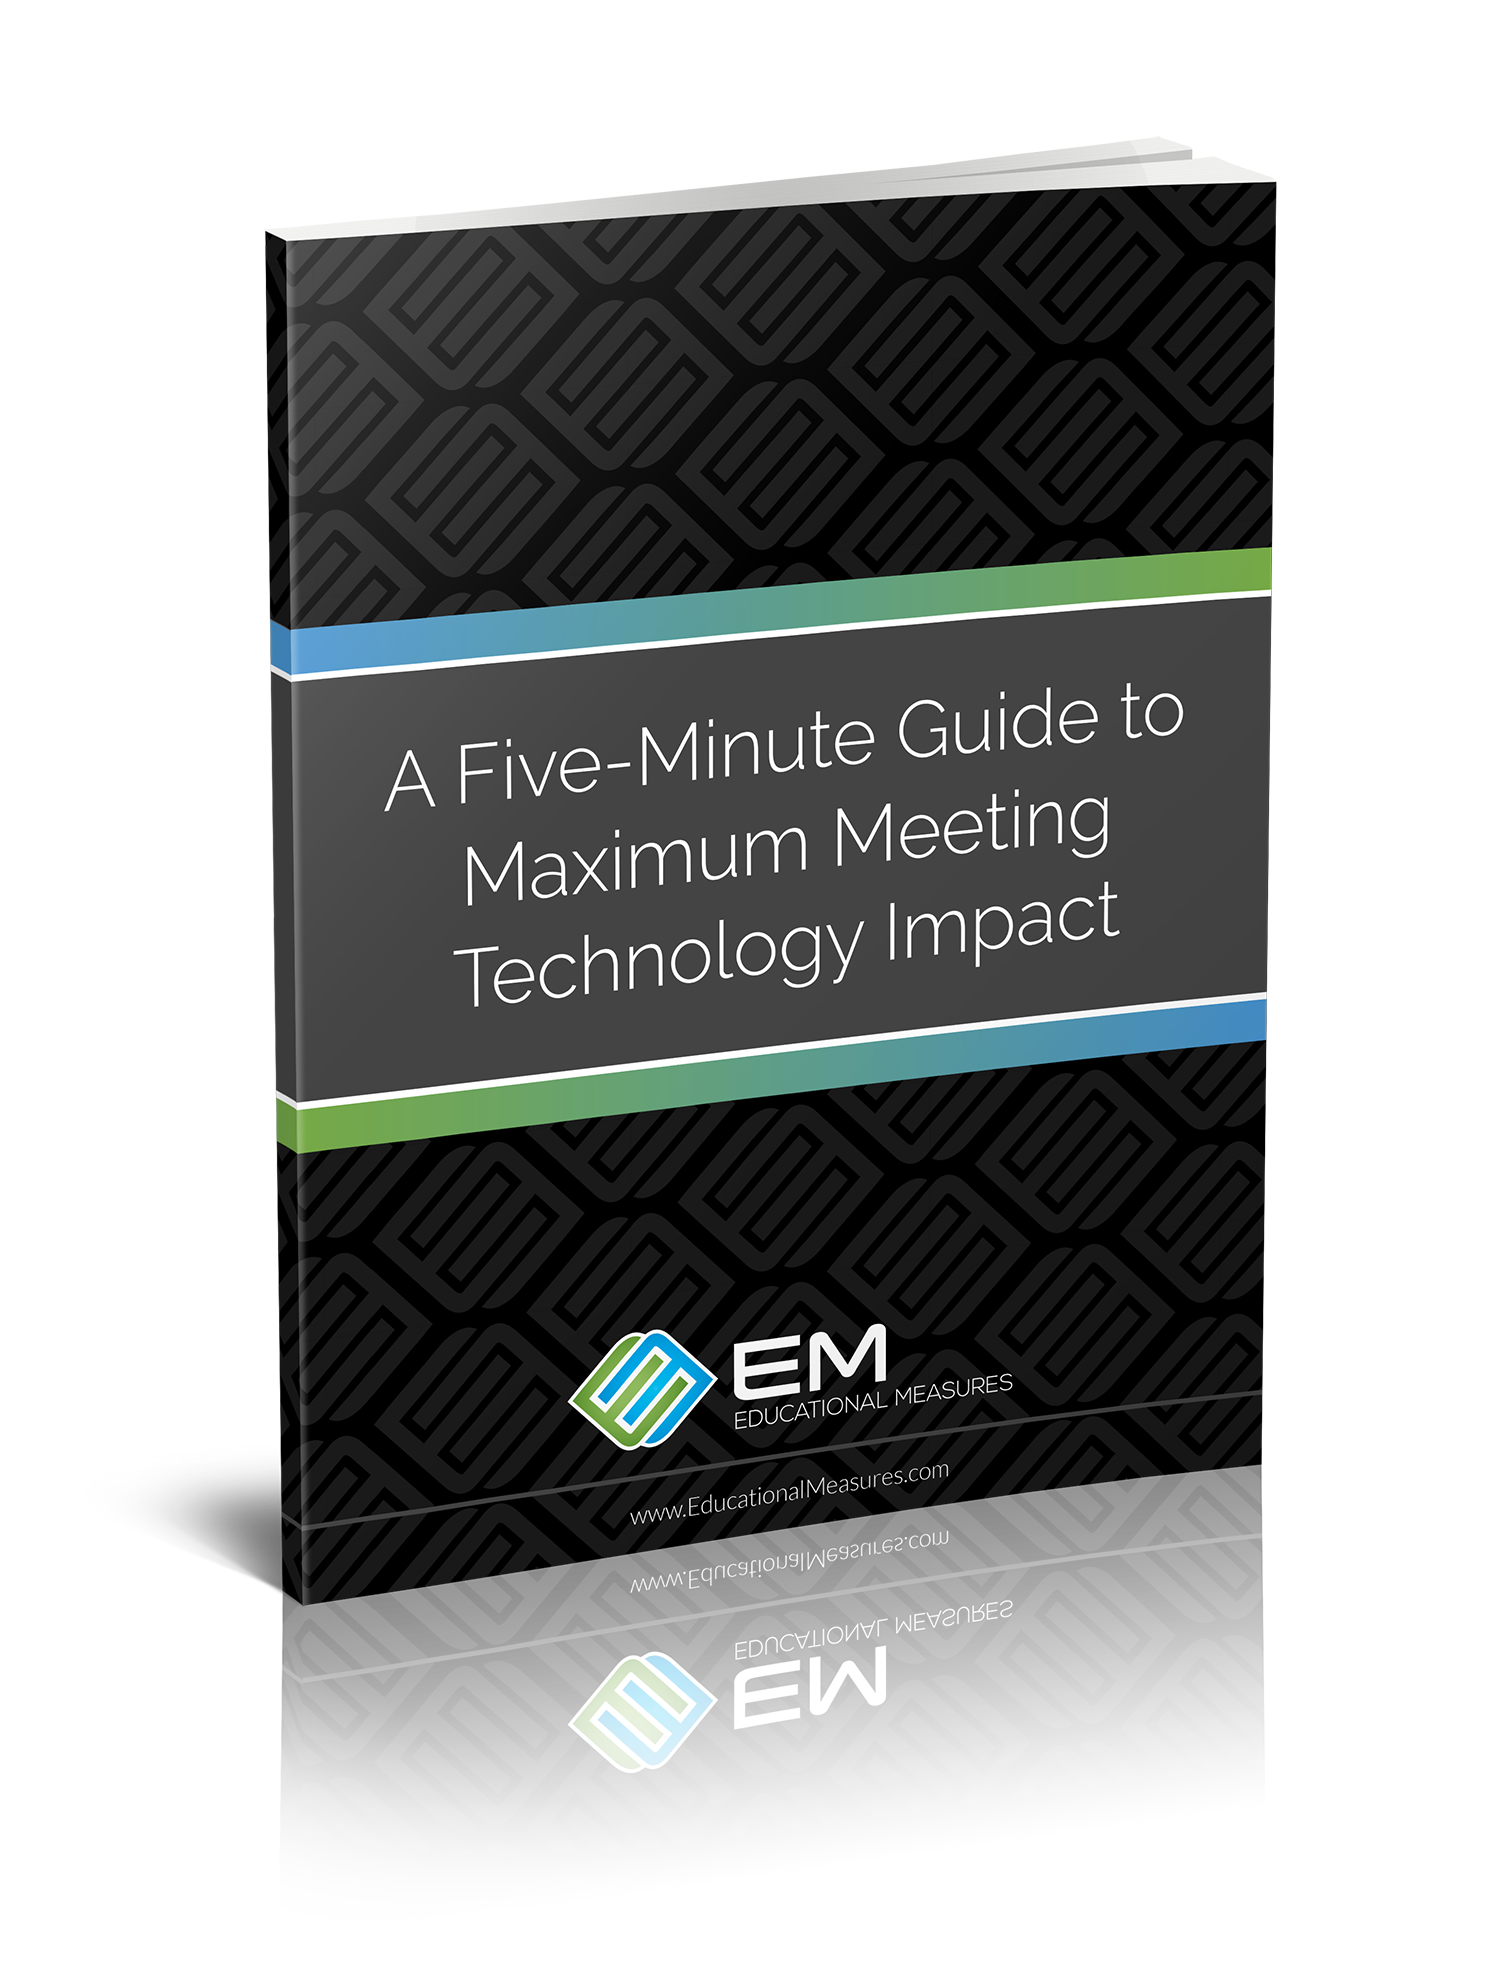 Five-Minute Guide to Maximum Meeting Technology Impact